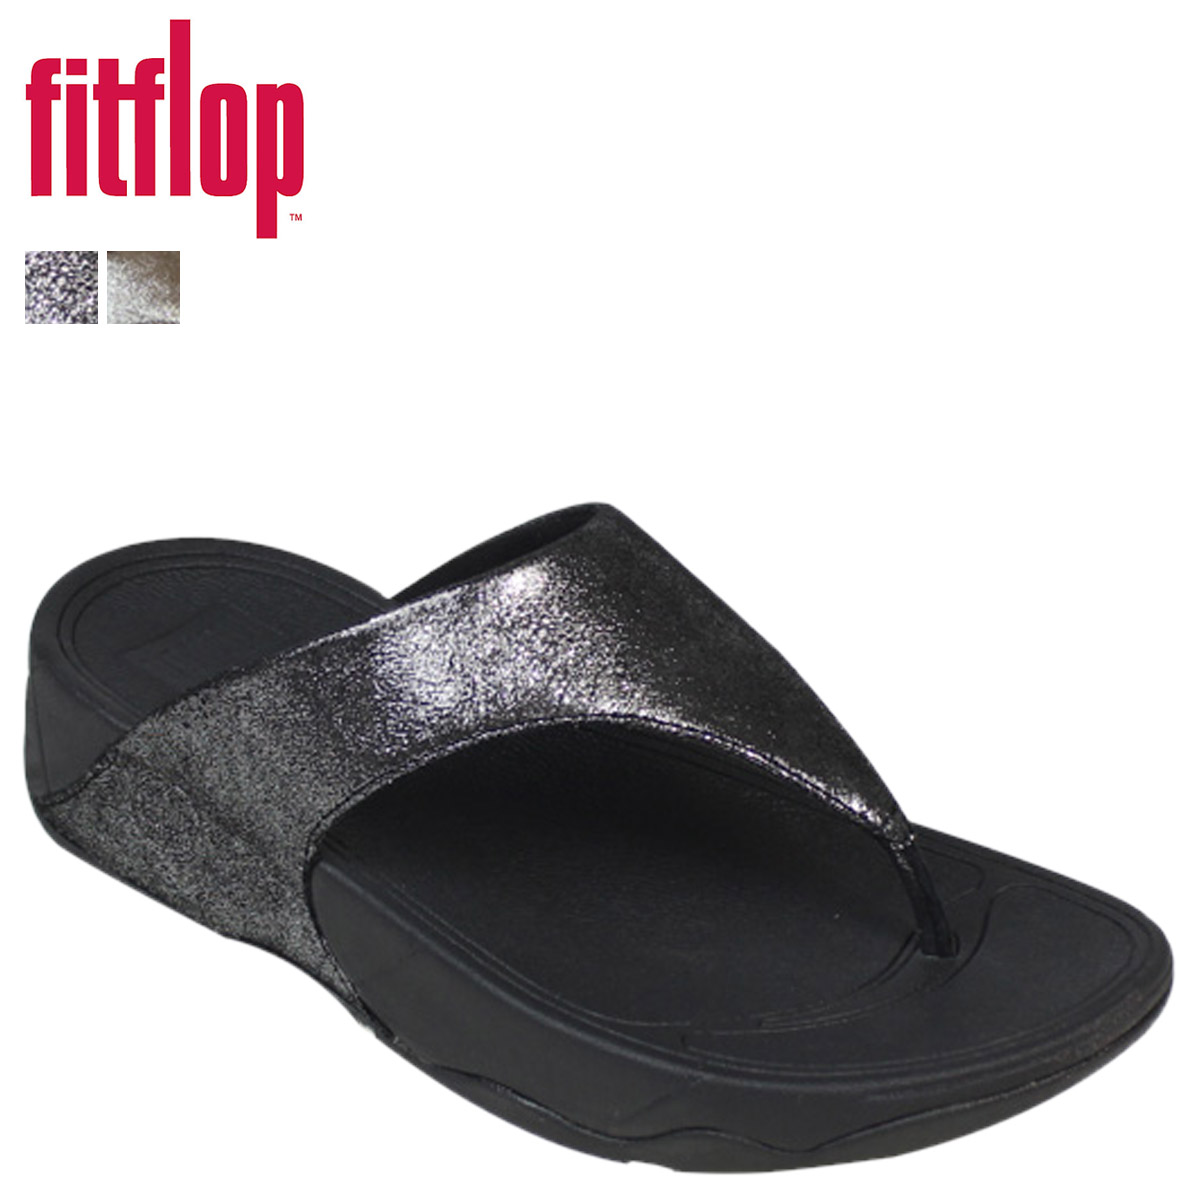 96008798e72f99 ... the density put a diverse focus on the fit flop Sandals first. New  generation footwear brand revolutionized the modern shoe industry does not  understand ...